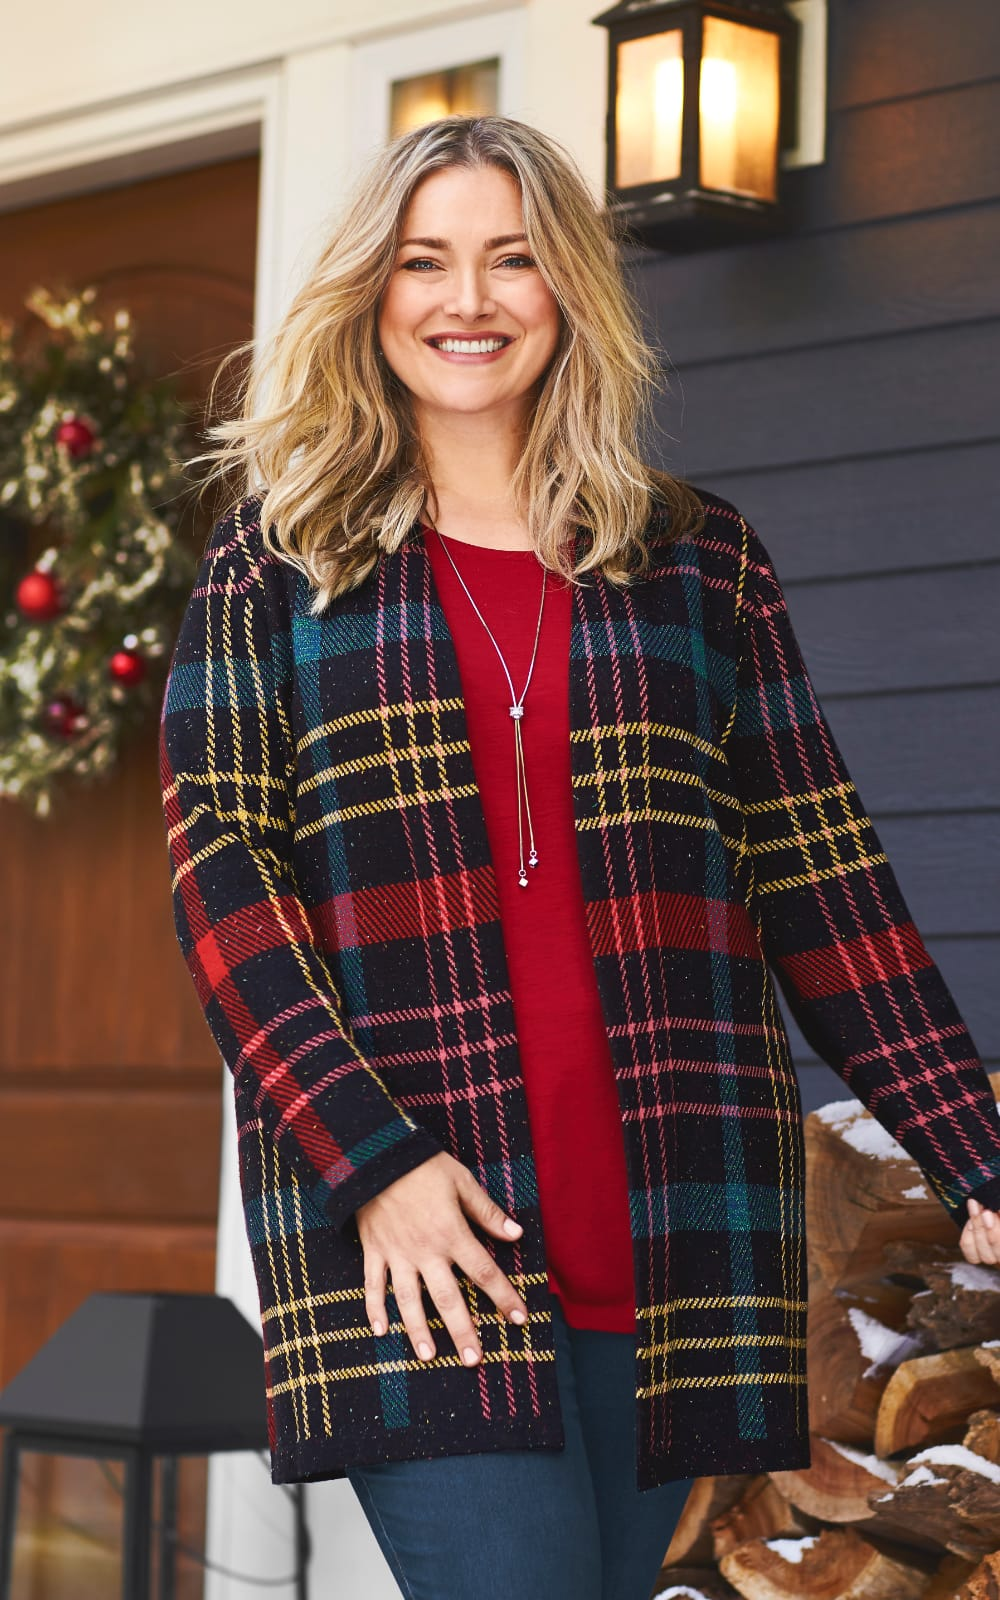 The Happy Holidays Outfit: Plaid coatigan, knit layering tunic, jean legging, and lariat necklace.